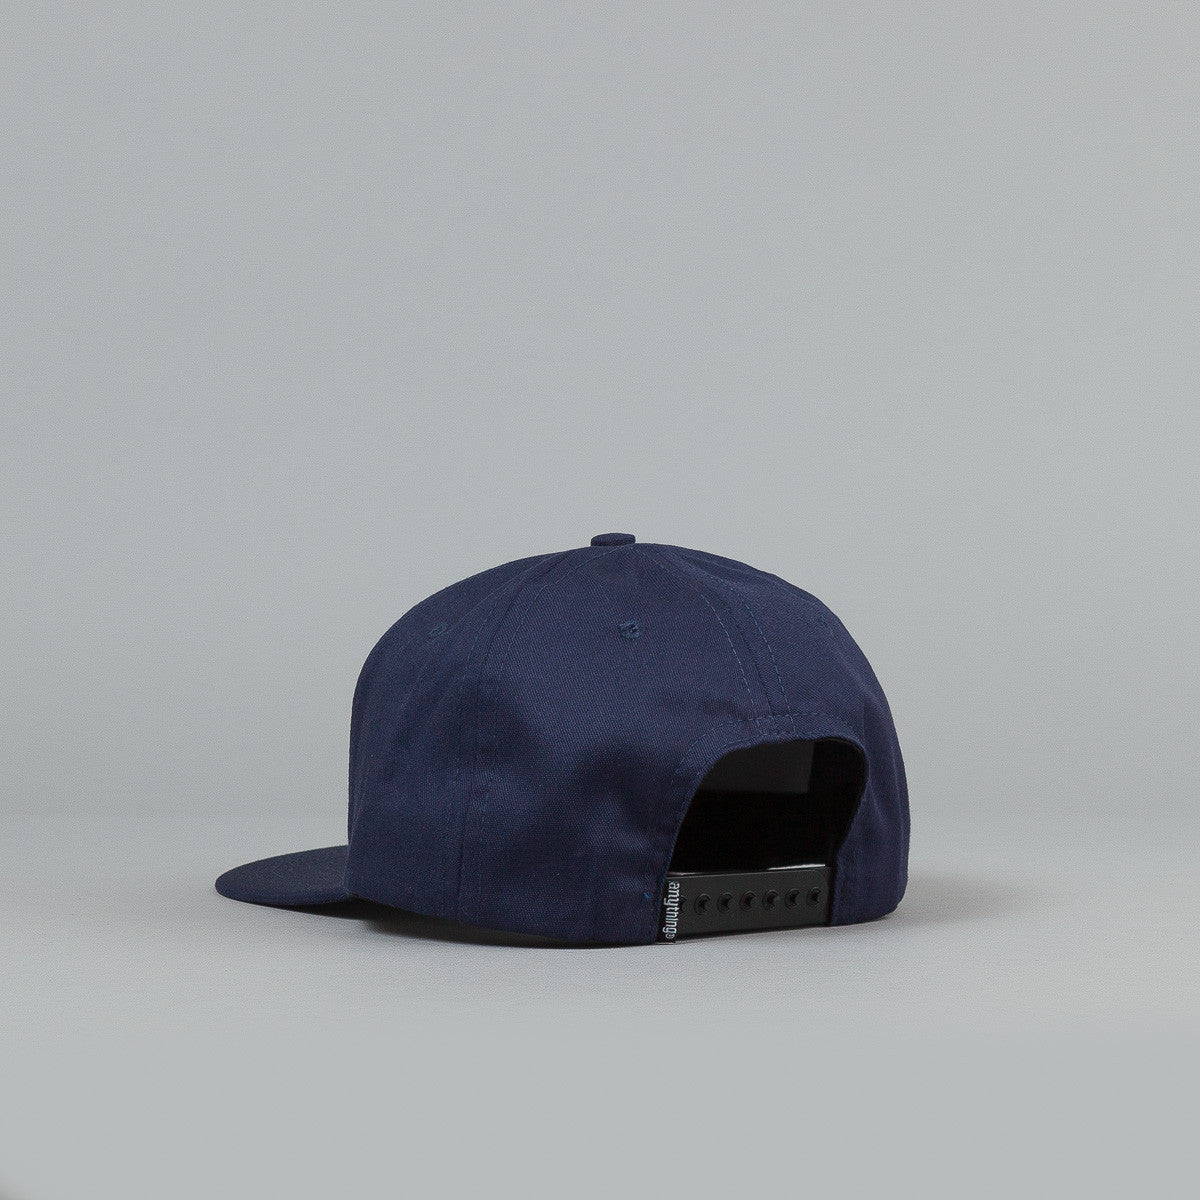 Anything Square Logo Snapback Cap Navy